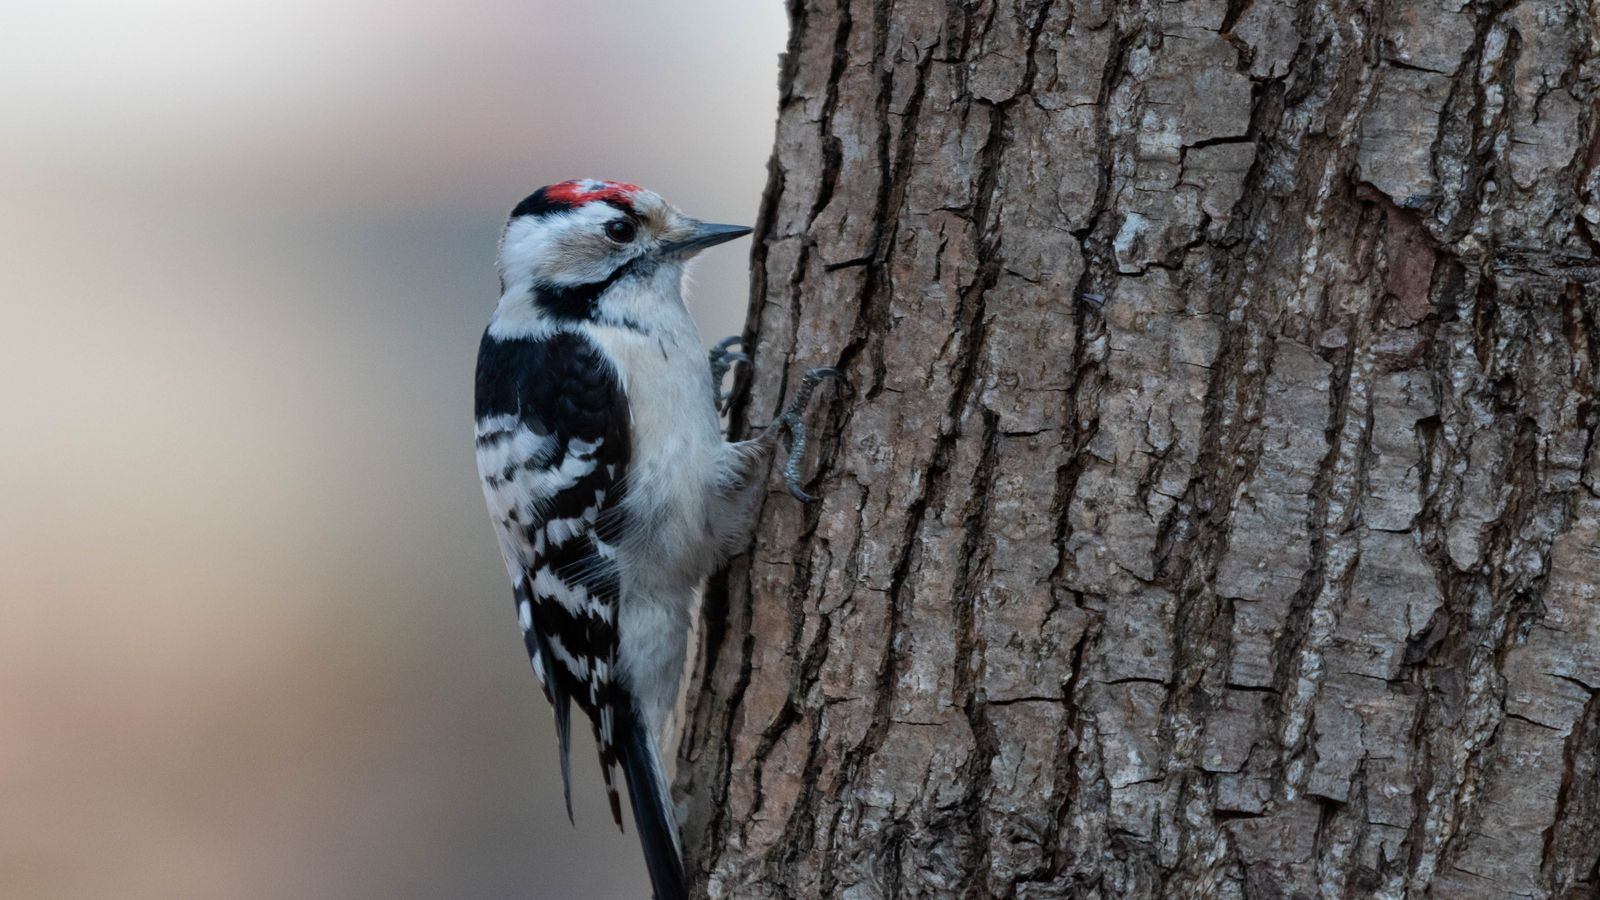 The lesser spotted woodpecker – contrary to the great spotted woodpecker – is a delicate bird barely ...